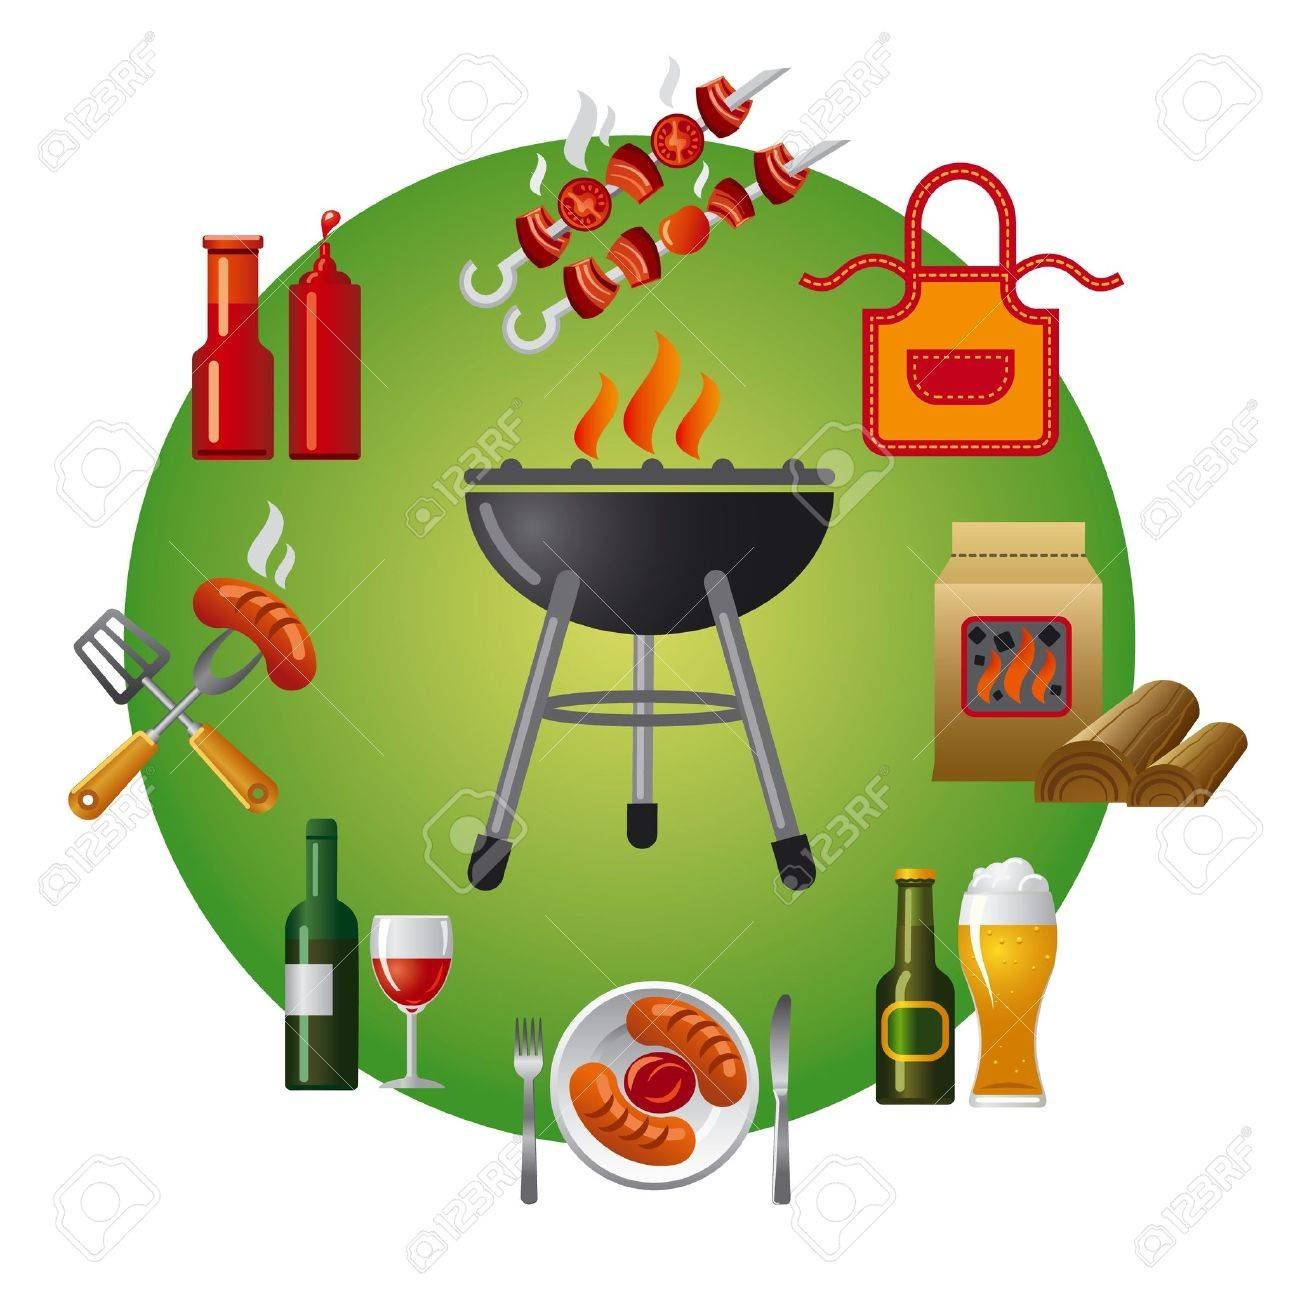 barbecue icon Stock Vector - 19234372